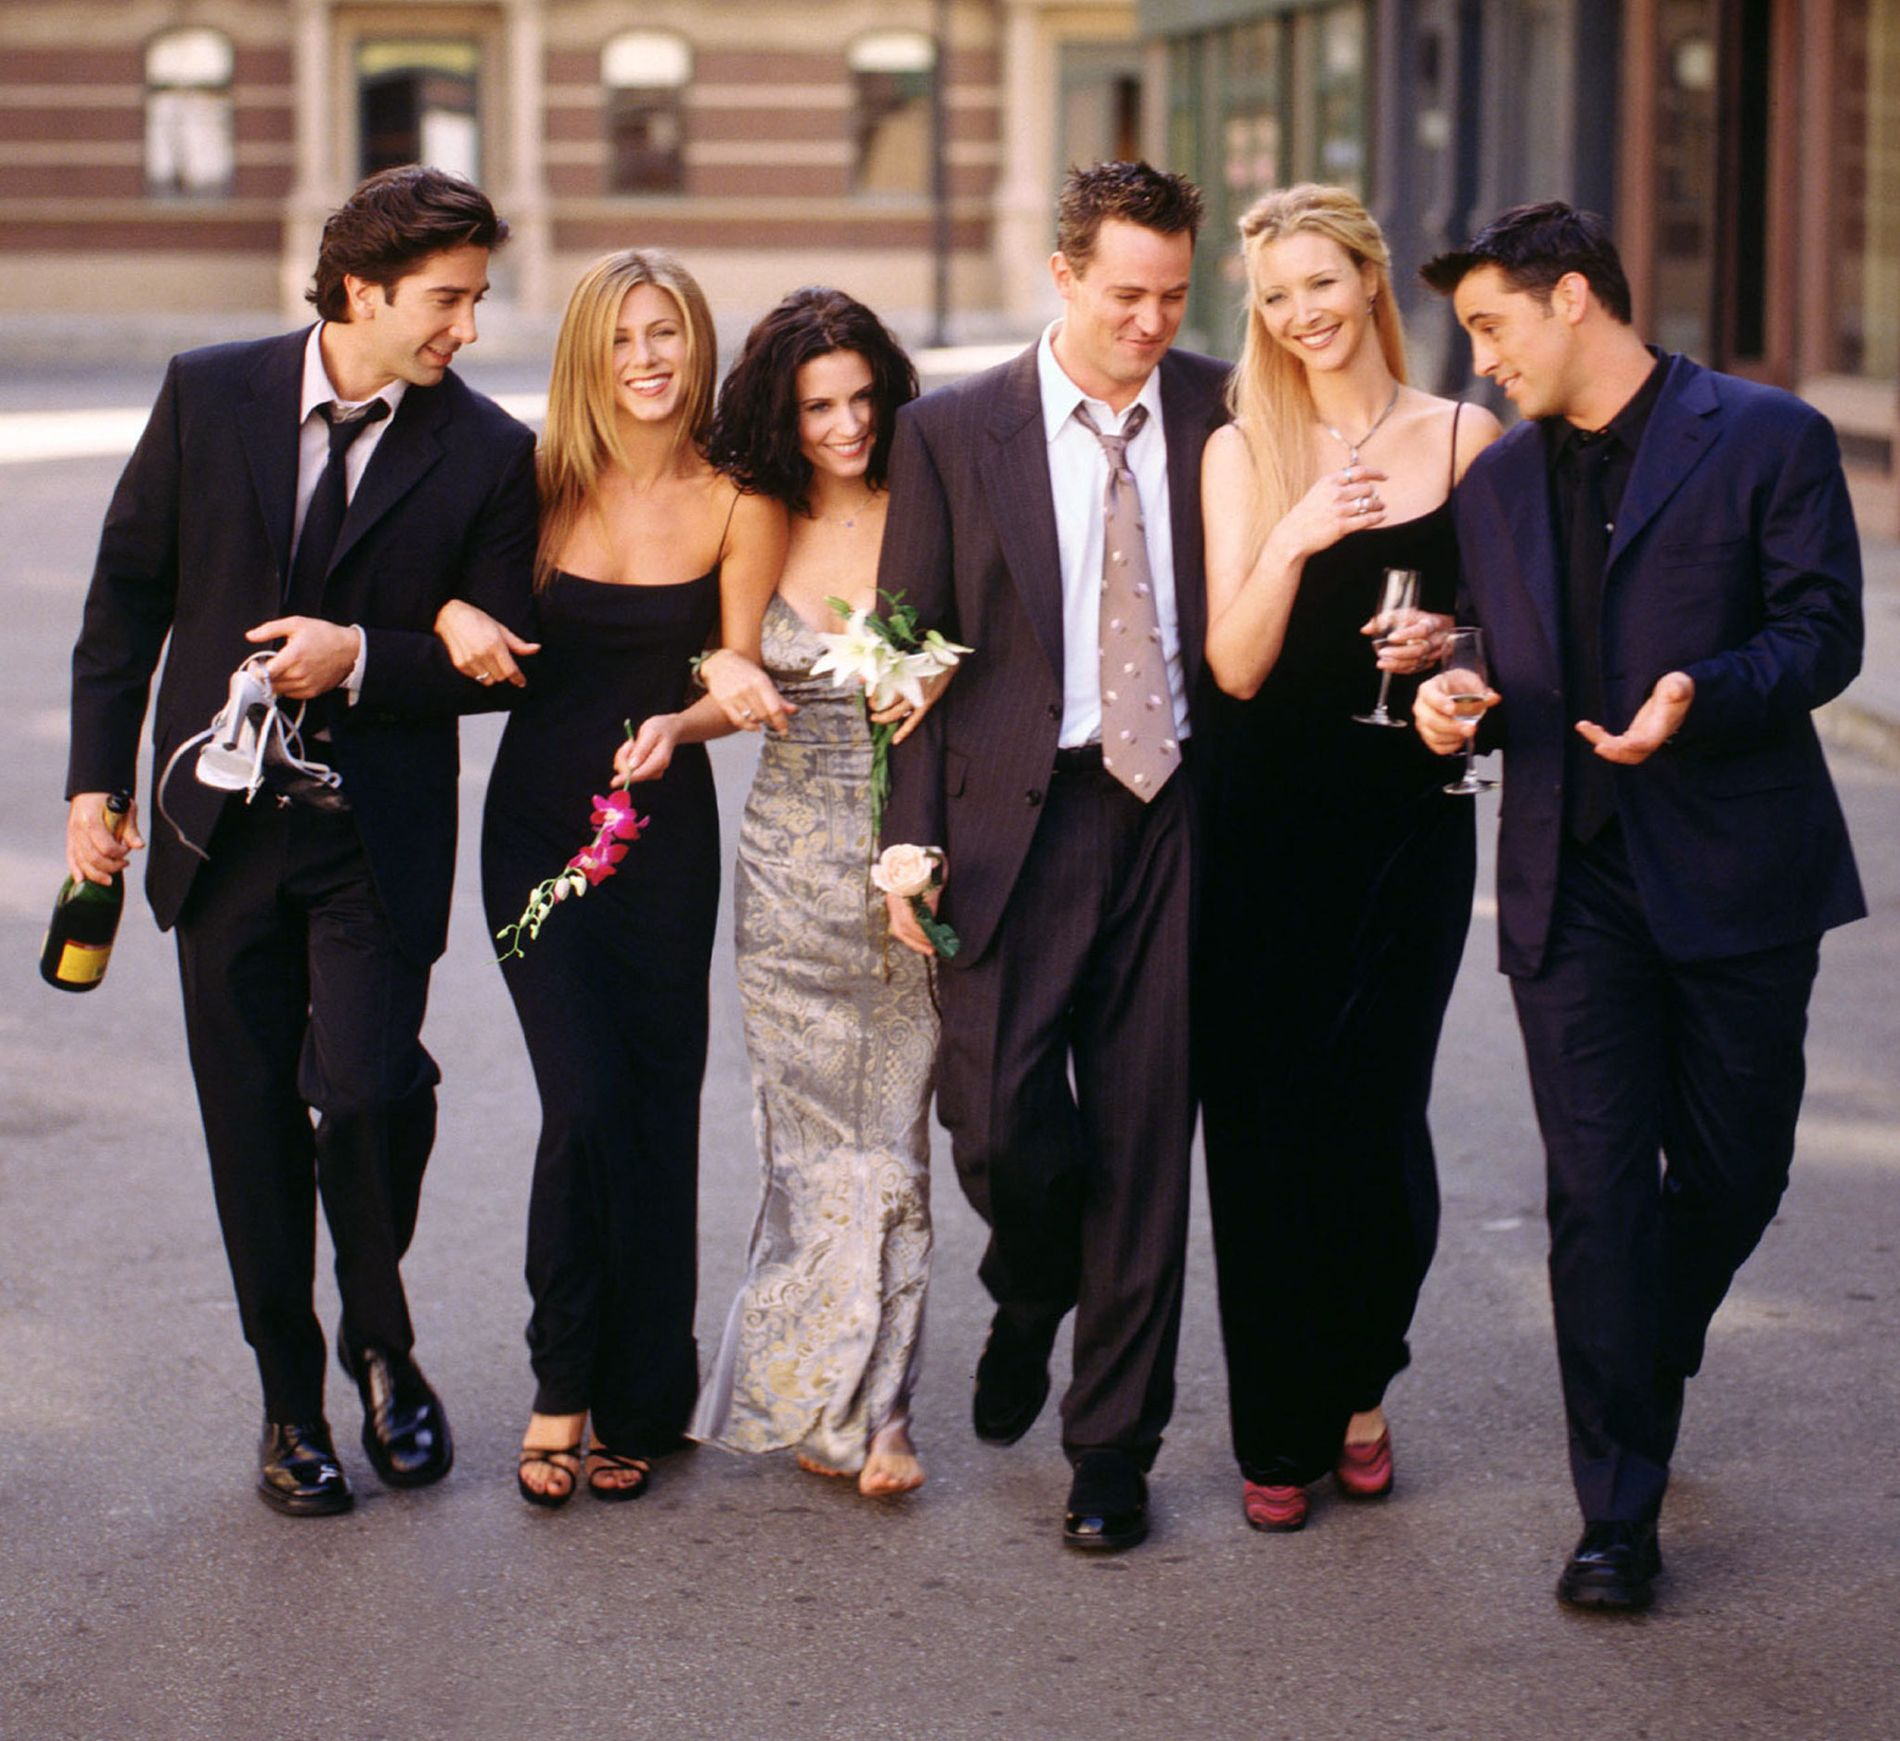 KLASSIKER: «Venner for livet», f.v.: David Schwimmer, Jennifer Aniston, Courteney Cox, Matthew Perry, Lisa Kudrow og Matt LeBlanc